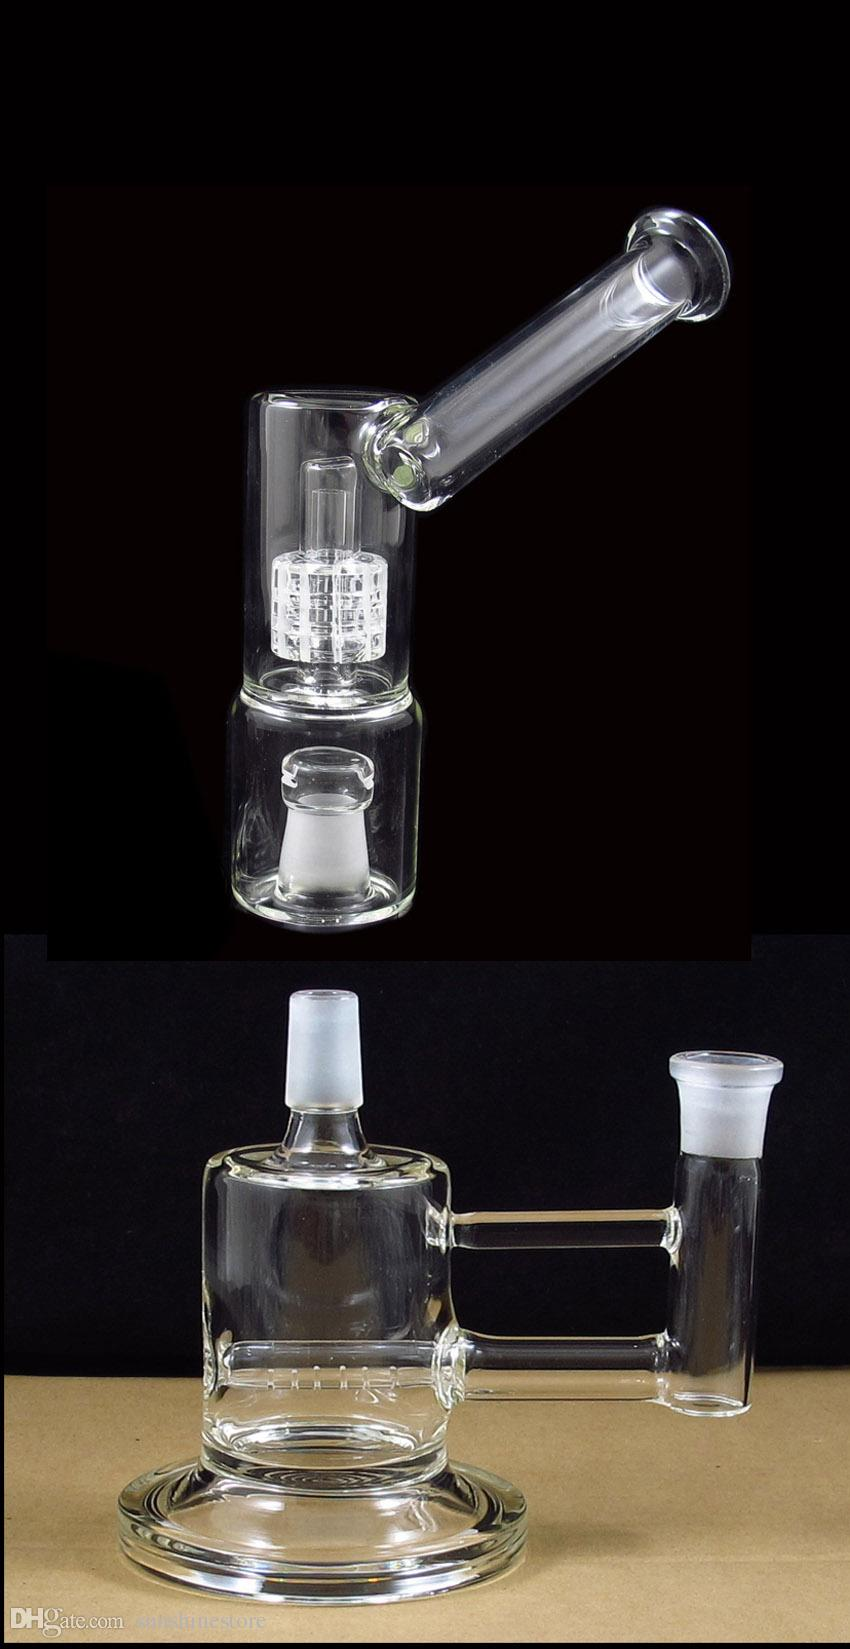 New design VapeXhale hydratube sidecar perc with stand 7 Inches bubbler glass bong 5mm thickness